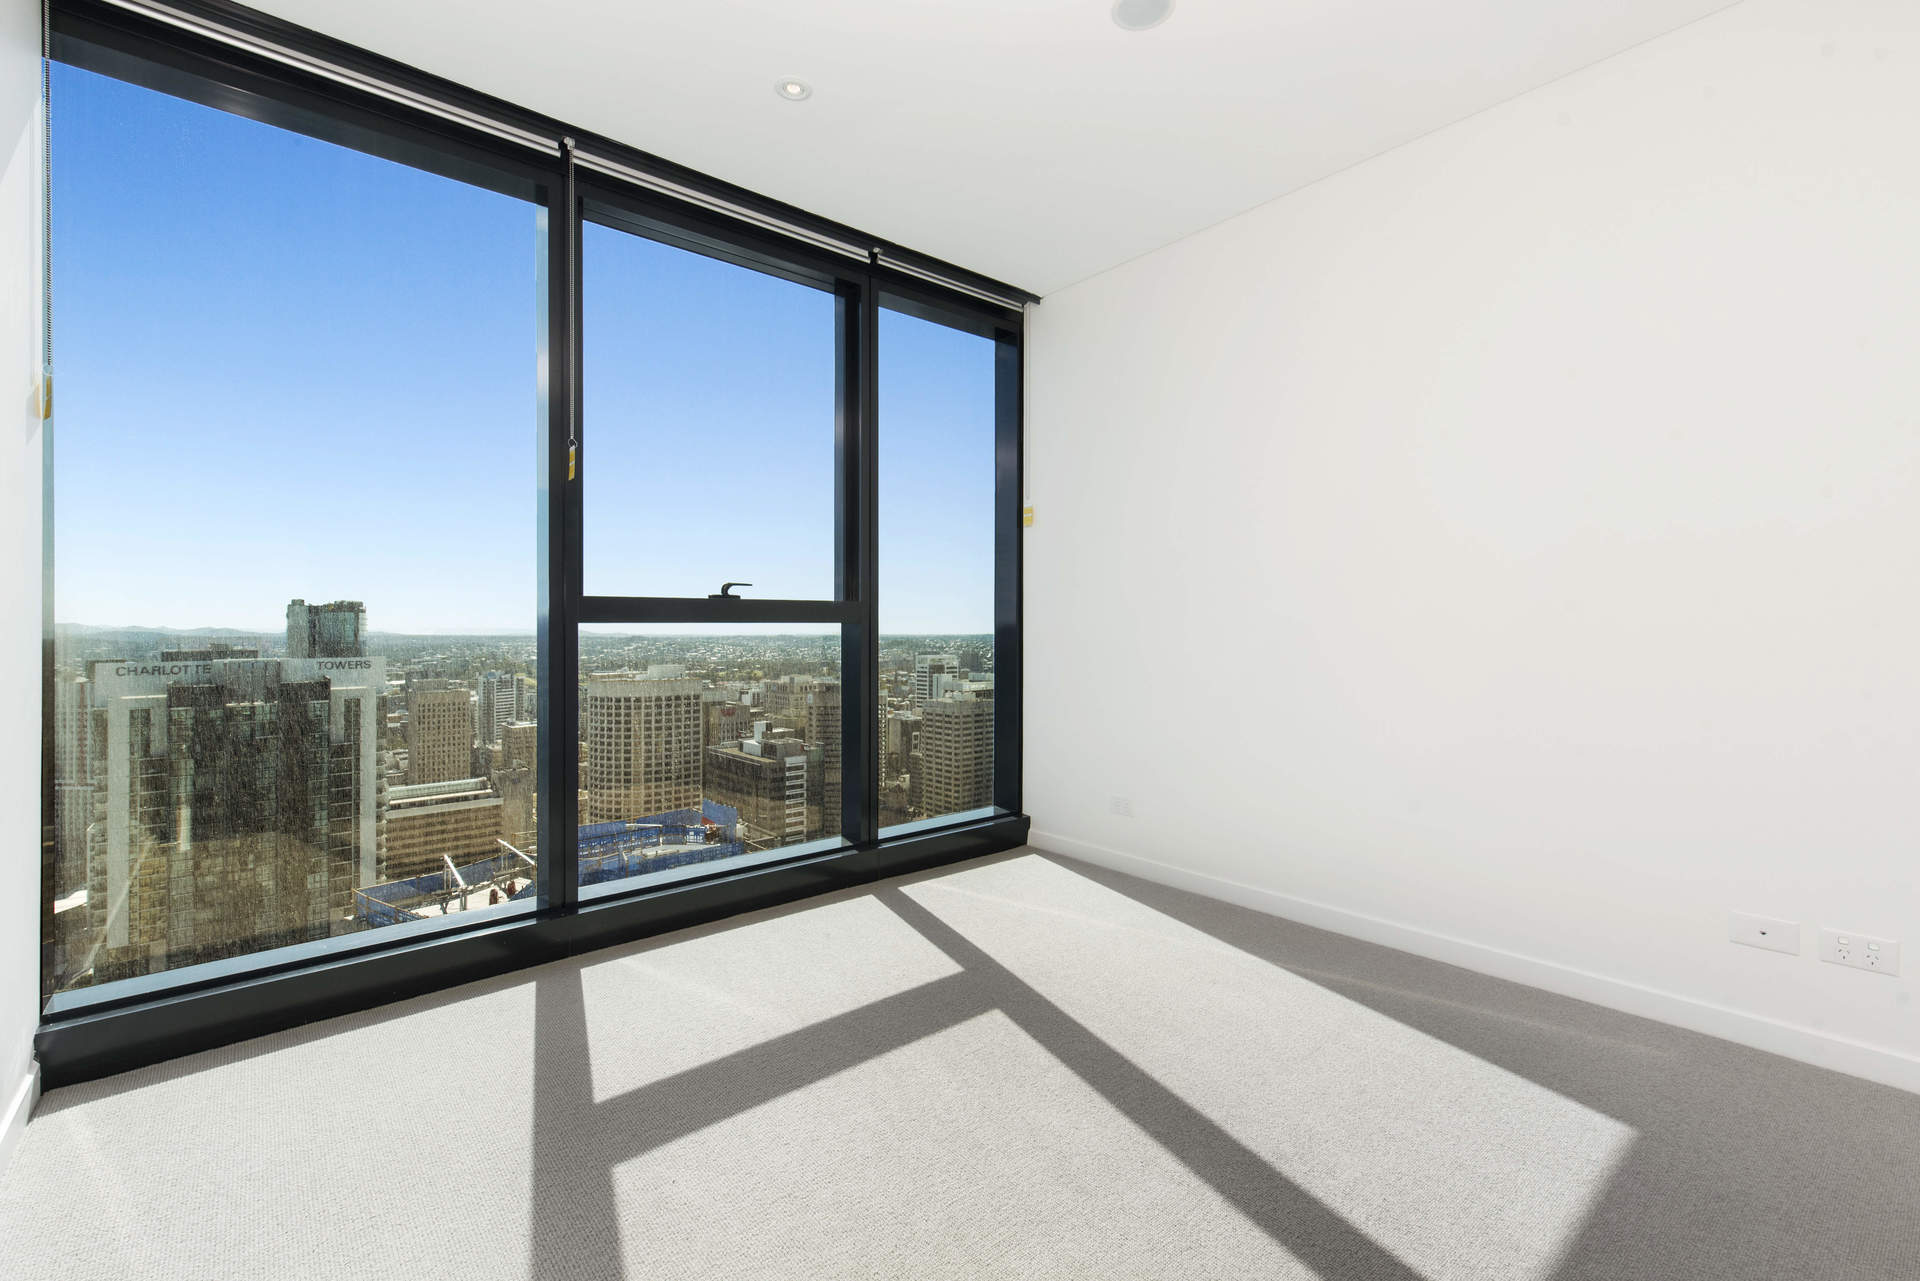 1 Bedroom Apartment Brisbane 6507 222 Margaret St Brisbane City 4000 1 Bedroom Apartment For